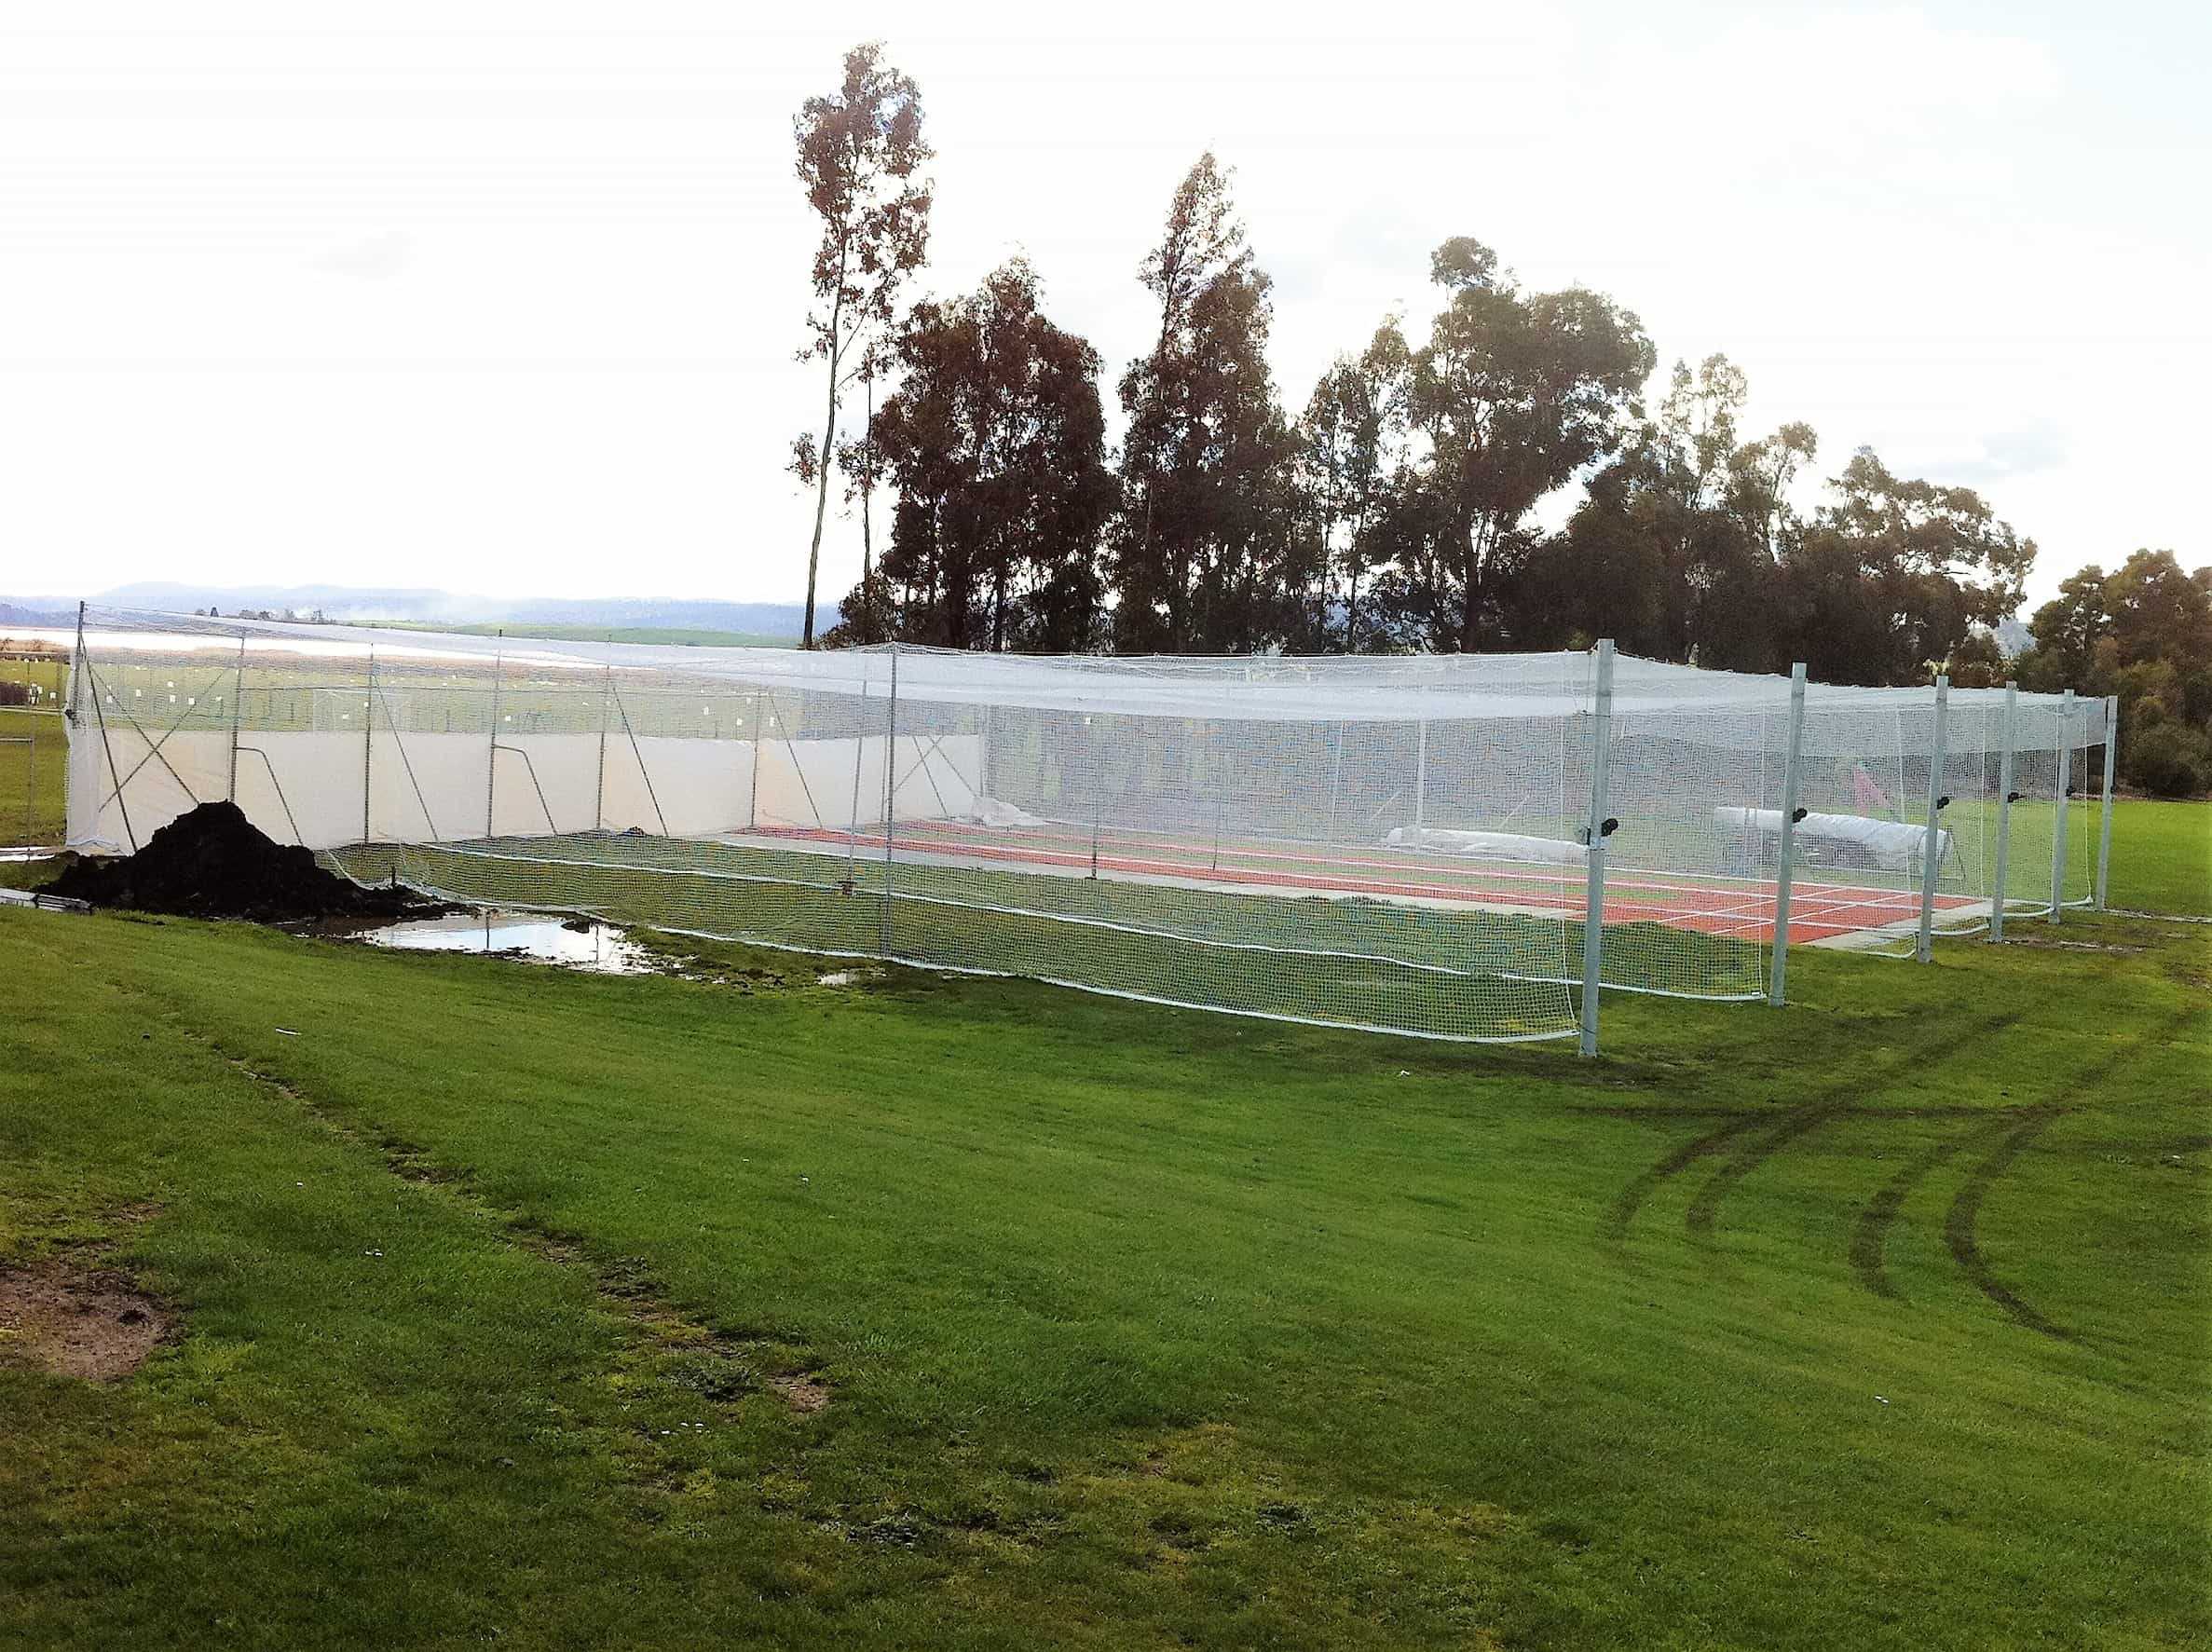 Steel gates adelaide sunlander outdoor products 600x450 jpeg - Steel Gates Adelaide Sunlander Outdoor Products 600x450 Jpeg Outdoor Cricket Practice Netting System